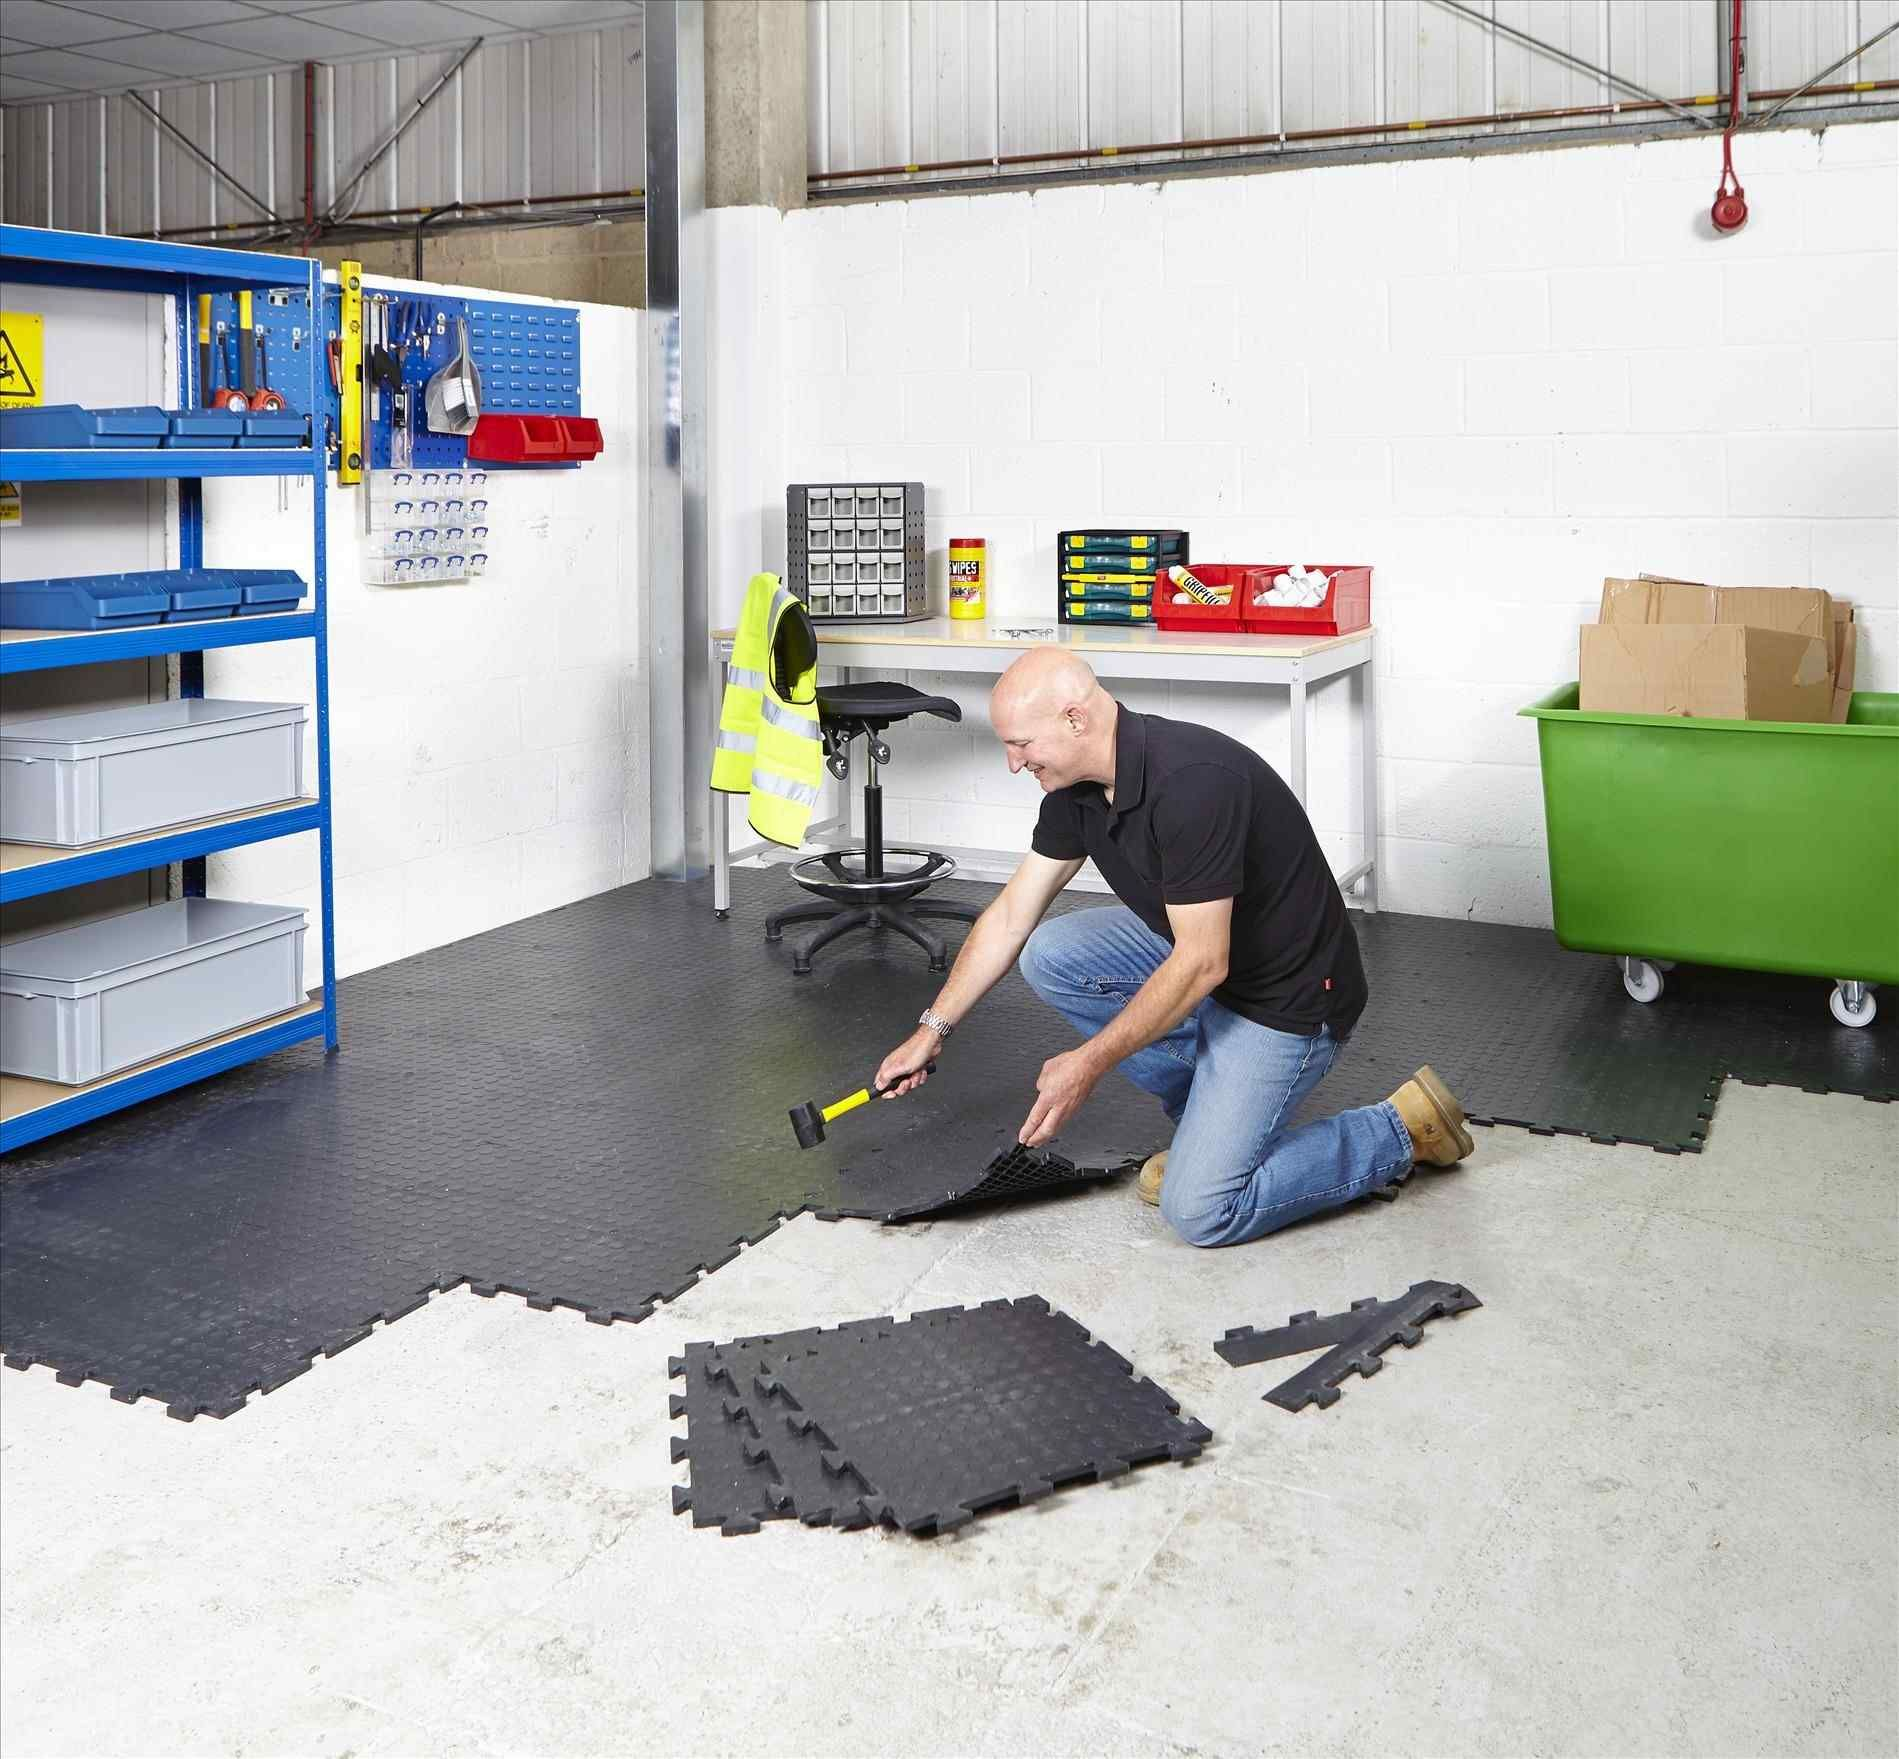 Garage Gym Flooring Ideas Garage floor tiles